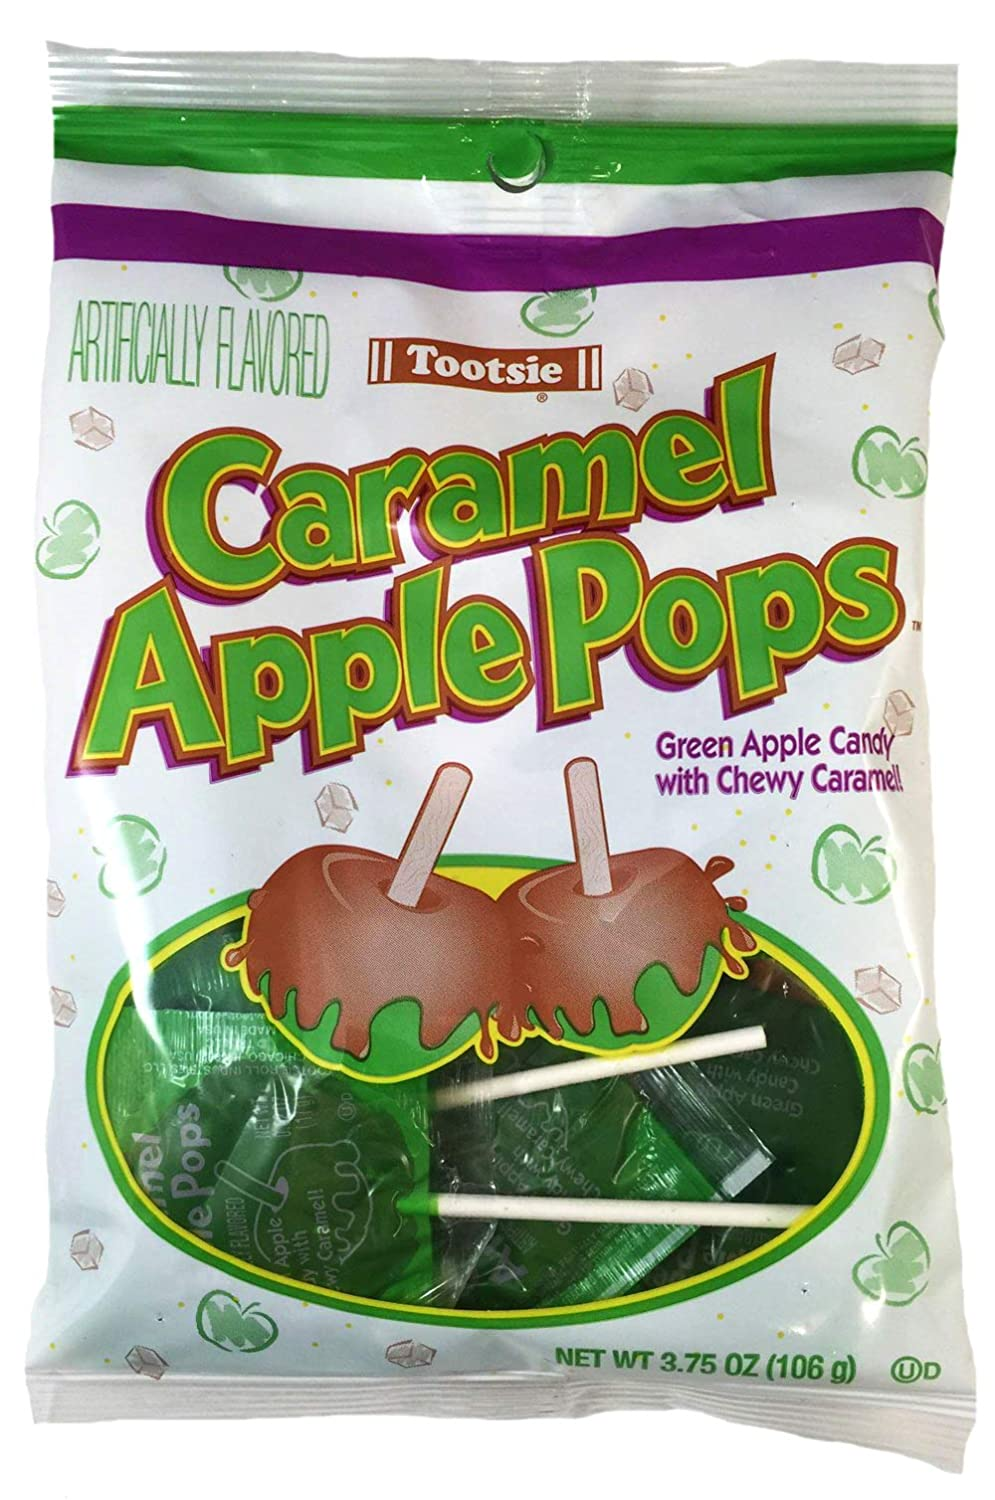 Tootsie (1) Bag Caramel Apple Pops - Green Apple Hard Candy with Chewy Caramel - Individually Wrapped Halloween/Fall Candy - Net Wt. 3.75 oz